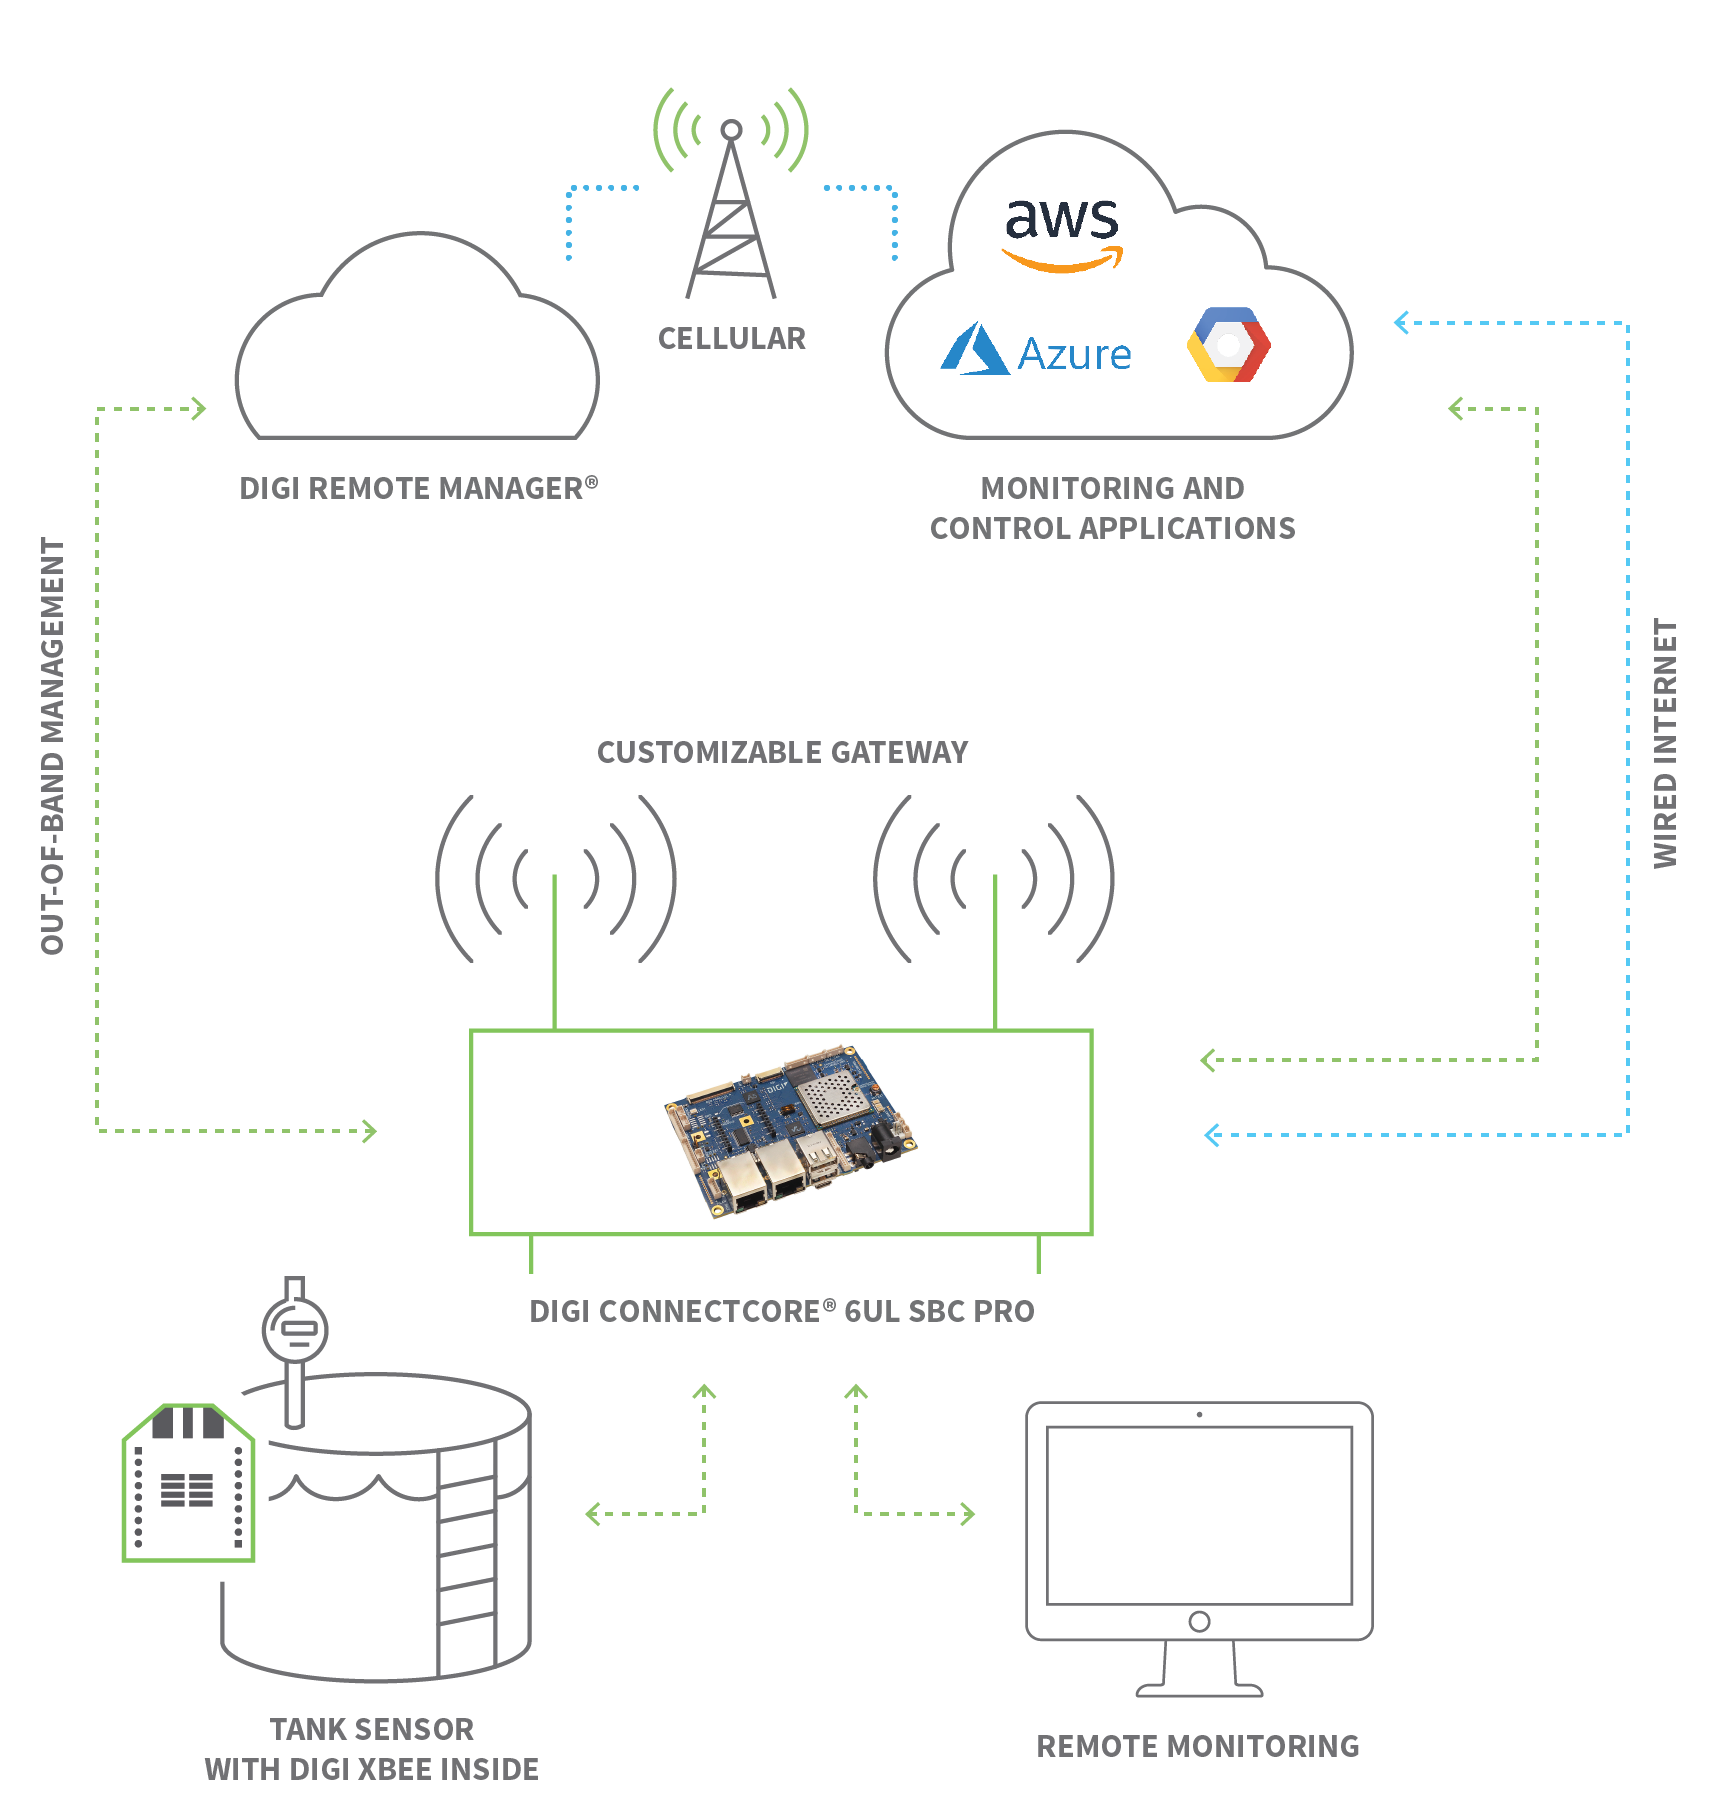 IIoT Remote Monitoring